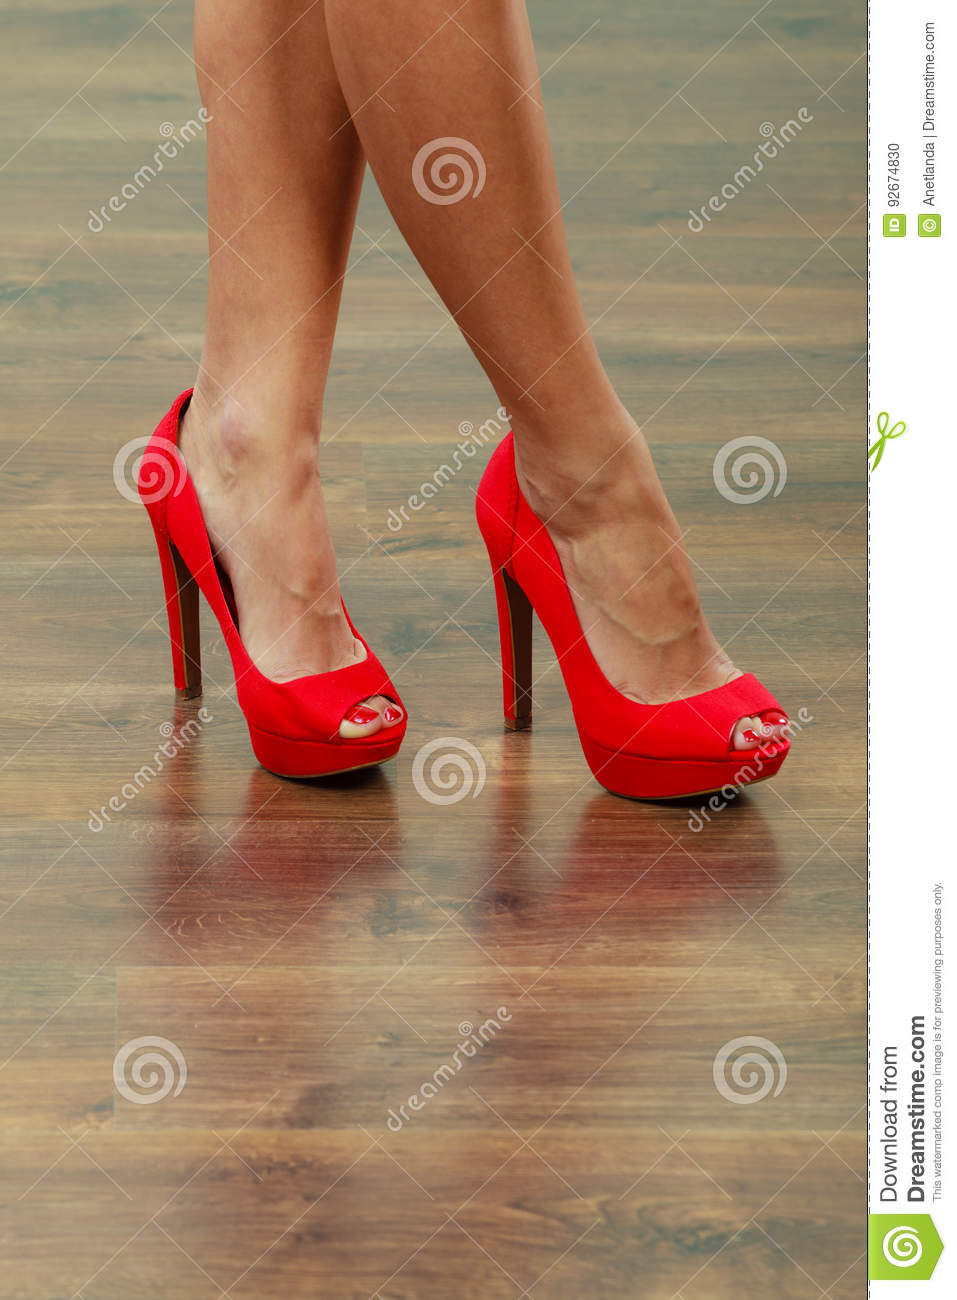 8583edff068 Red High Heels Spiked Shoes On Female Legs Stock Photo - Image of ...